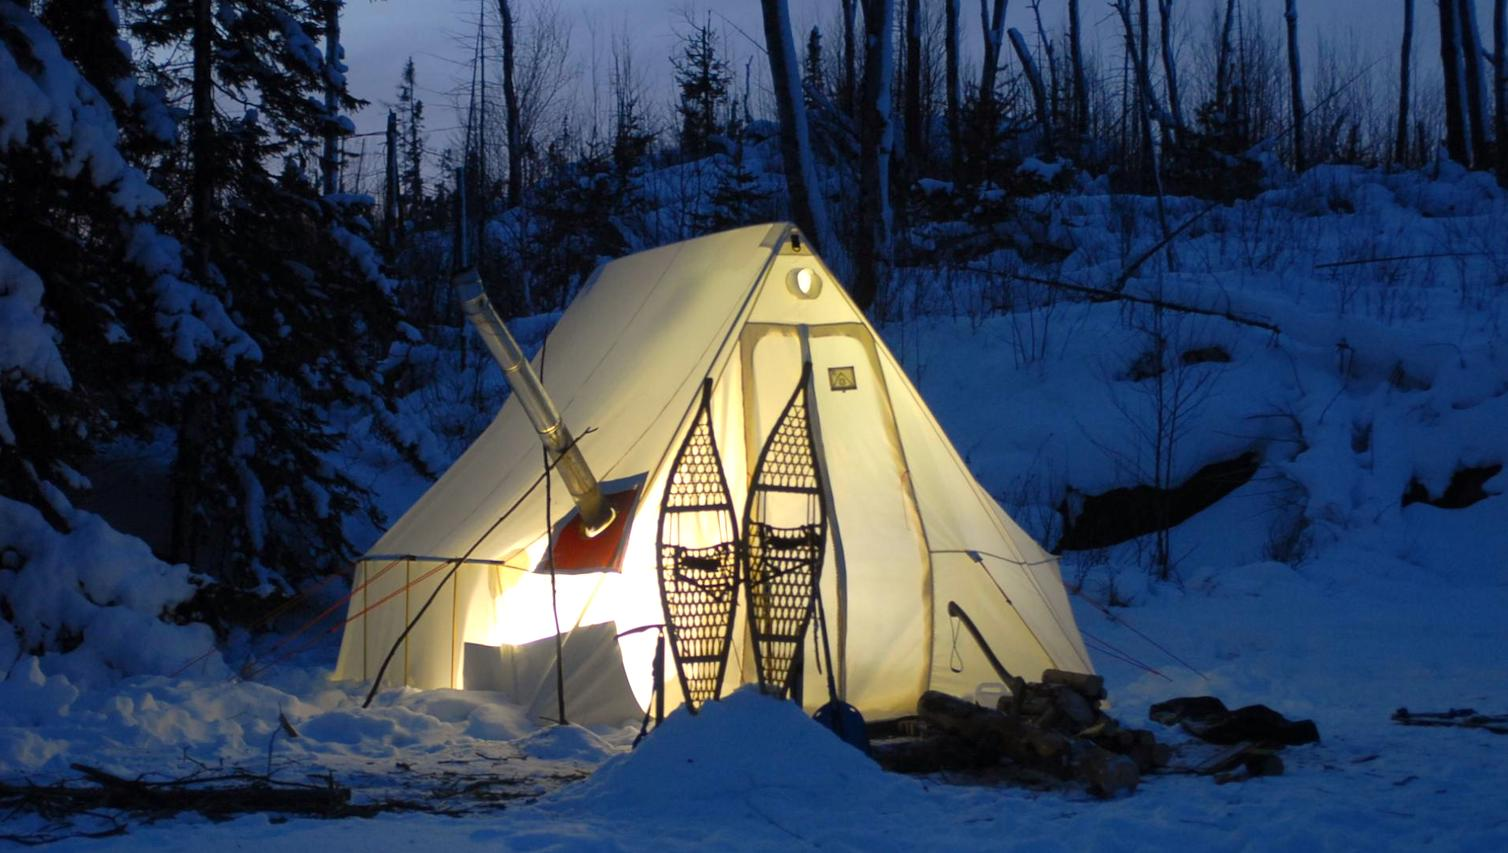 appalachian tent snow night